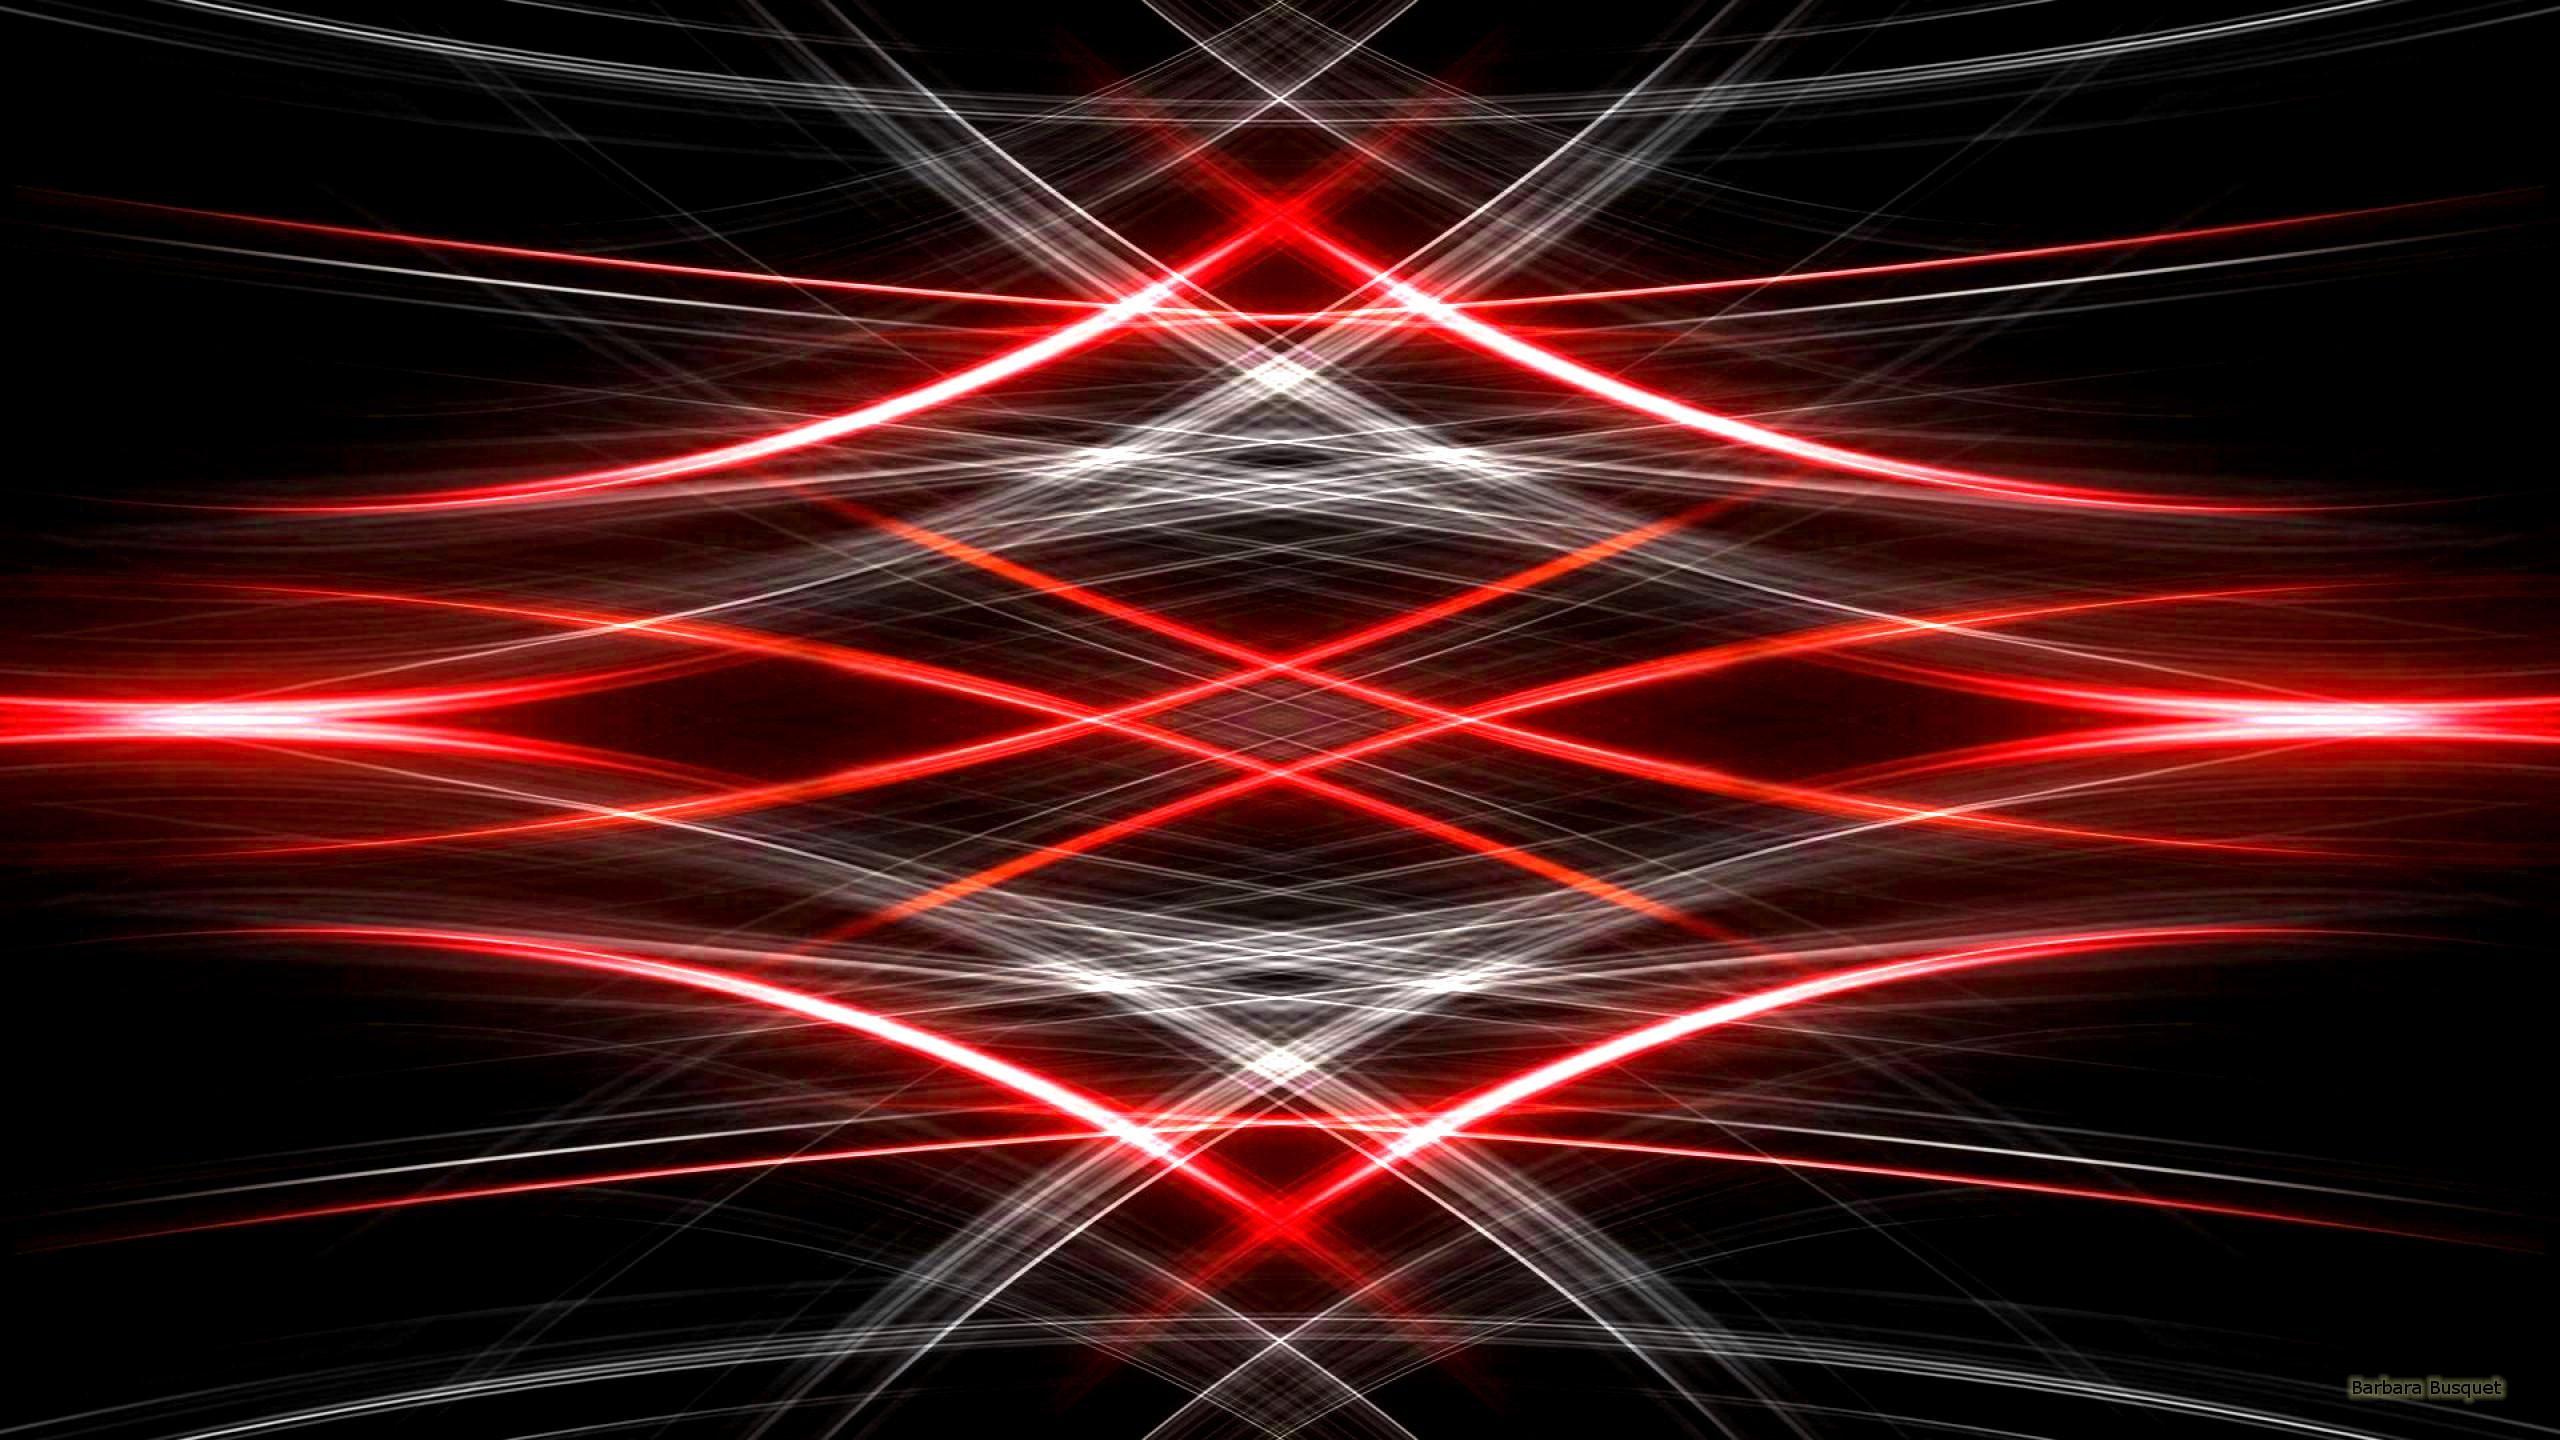 Cool Red And Black Abstract Backgrounds wallpaper